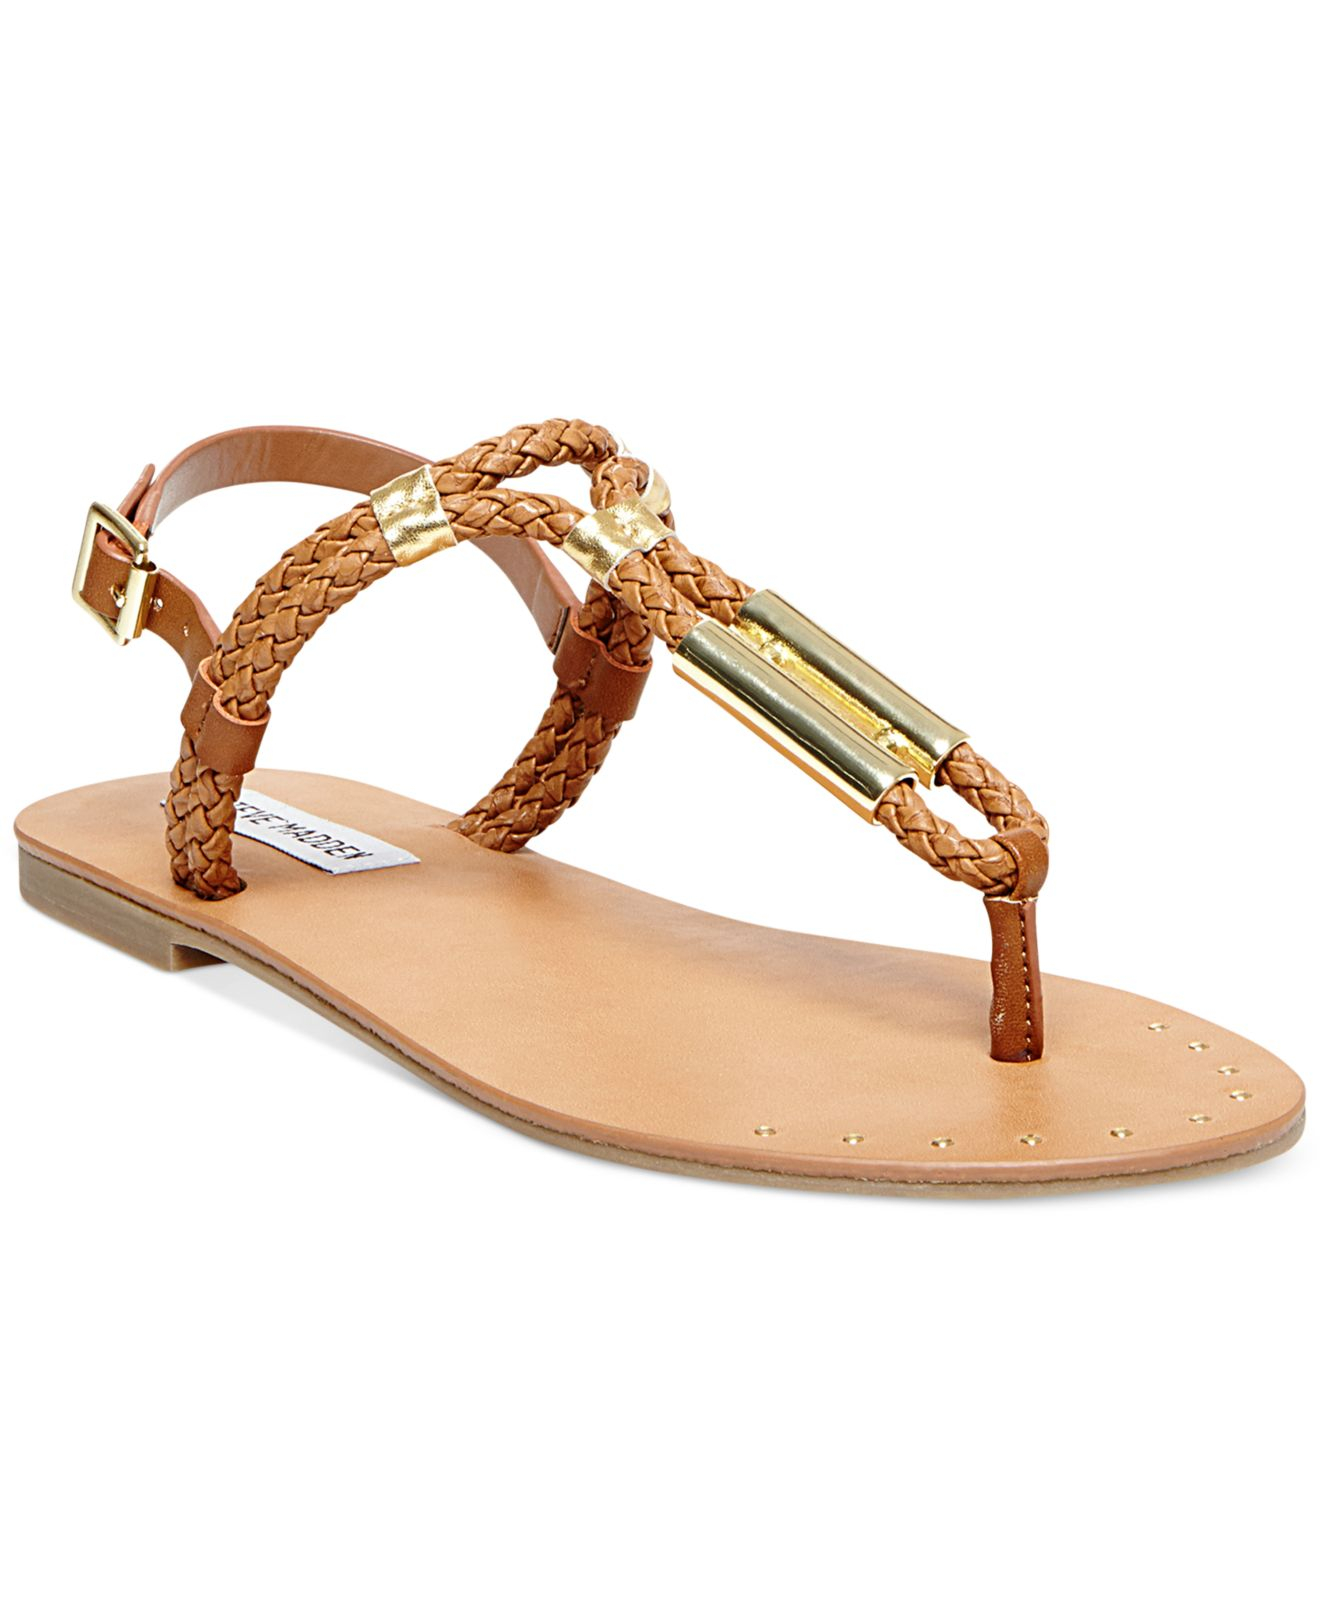 e056aadc8d69 Lyst - Steve Madden Braidie Flat Thong Sandals in Brown